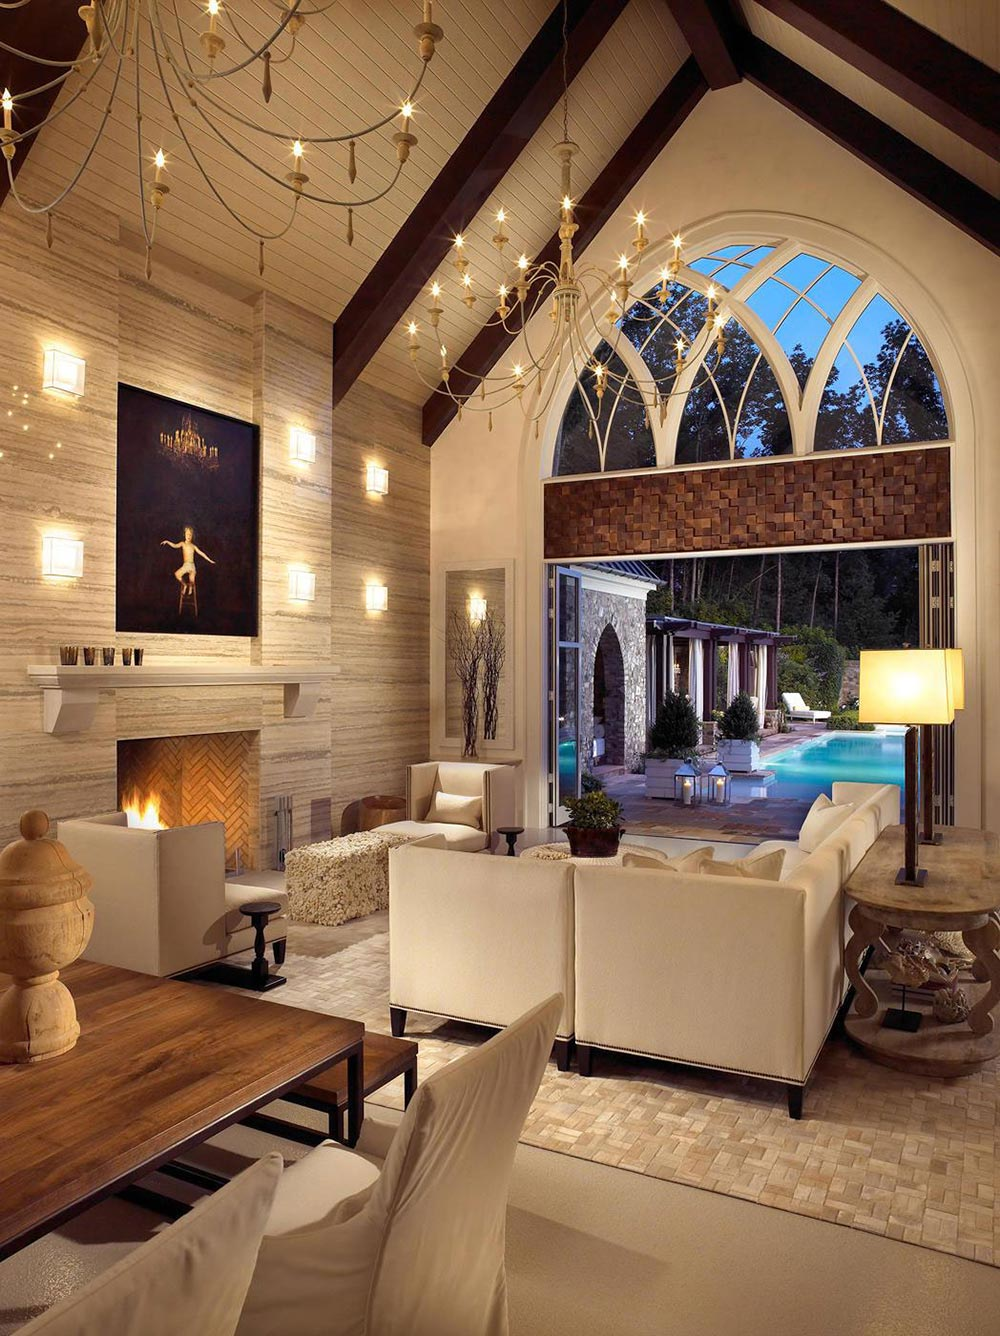 Interior Design, Pool House & Wine Cellar in Nashville, Tennessee by Beckwith Interiors